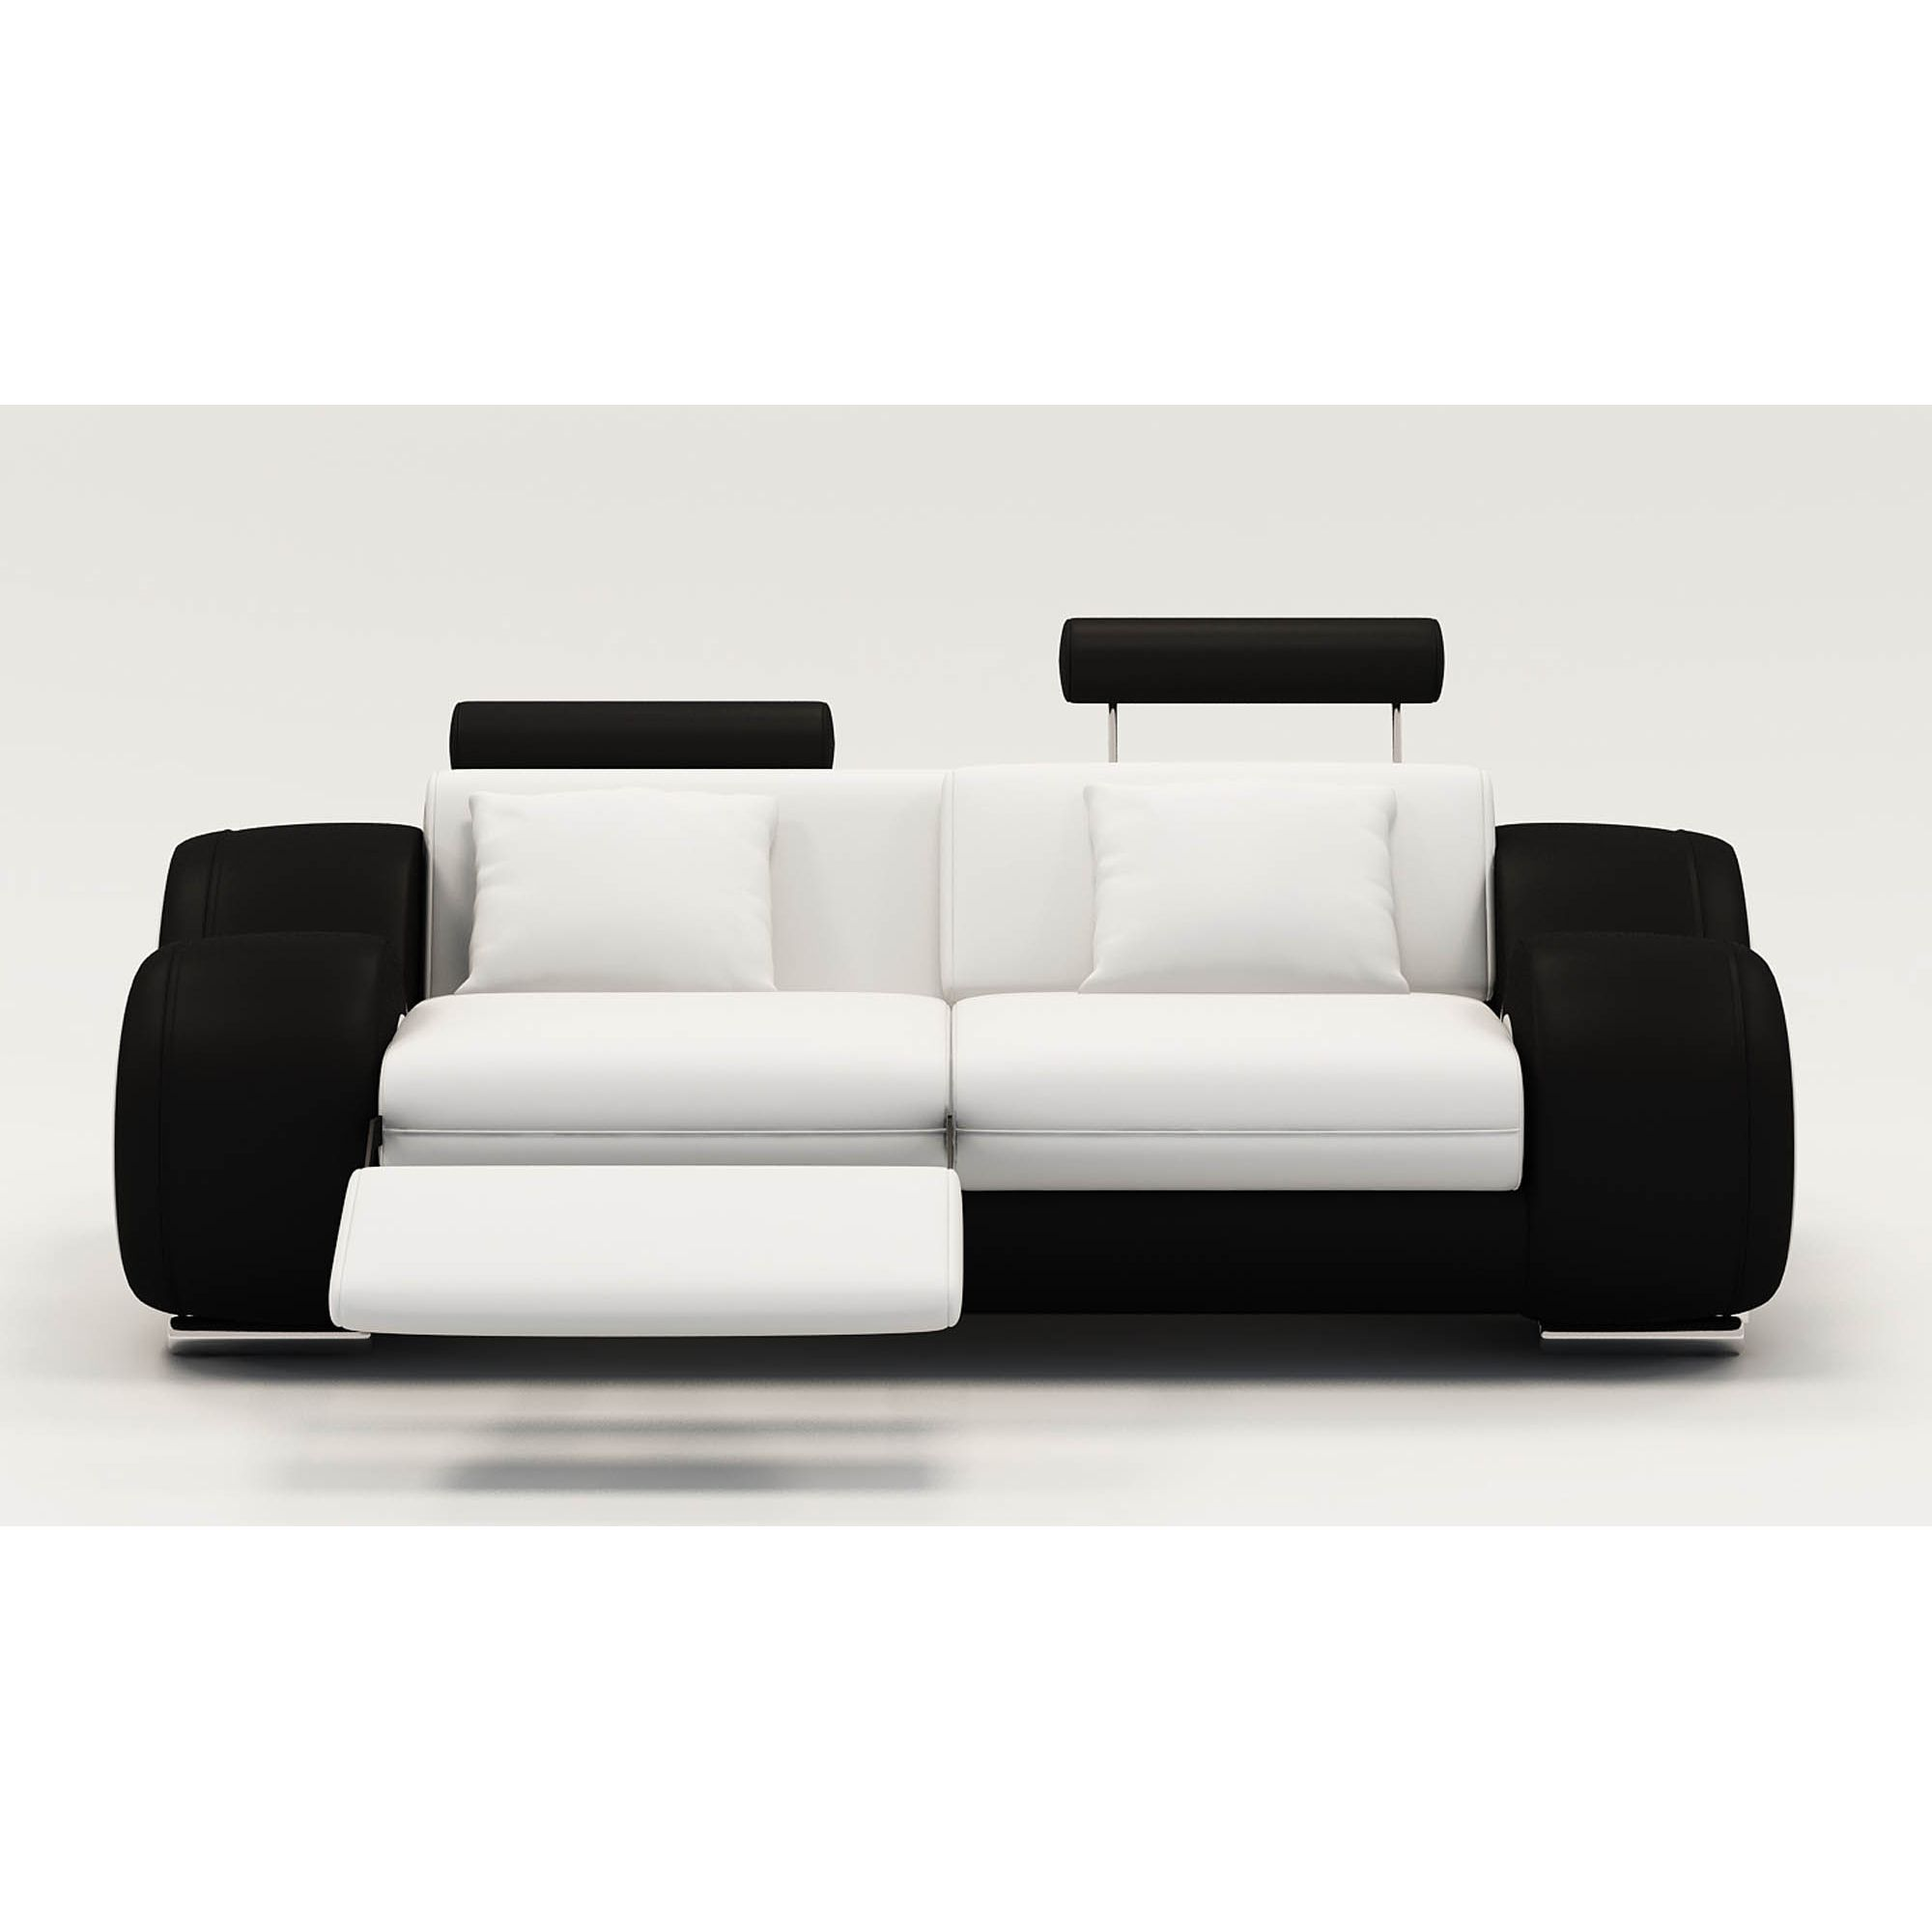 Deco in paris canape 2 places design relax oslo en cuir - Canape 2 places relax cuir ...